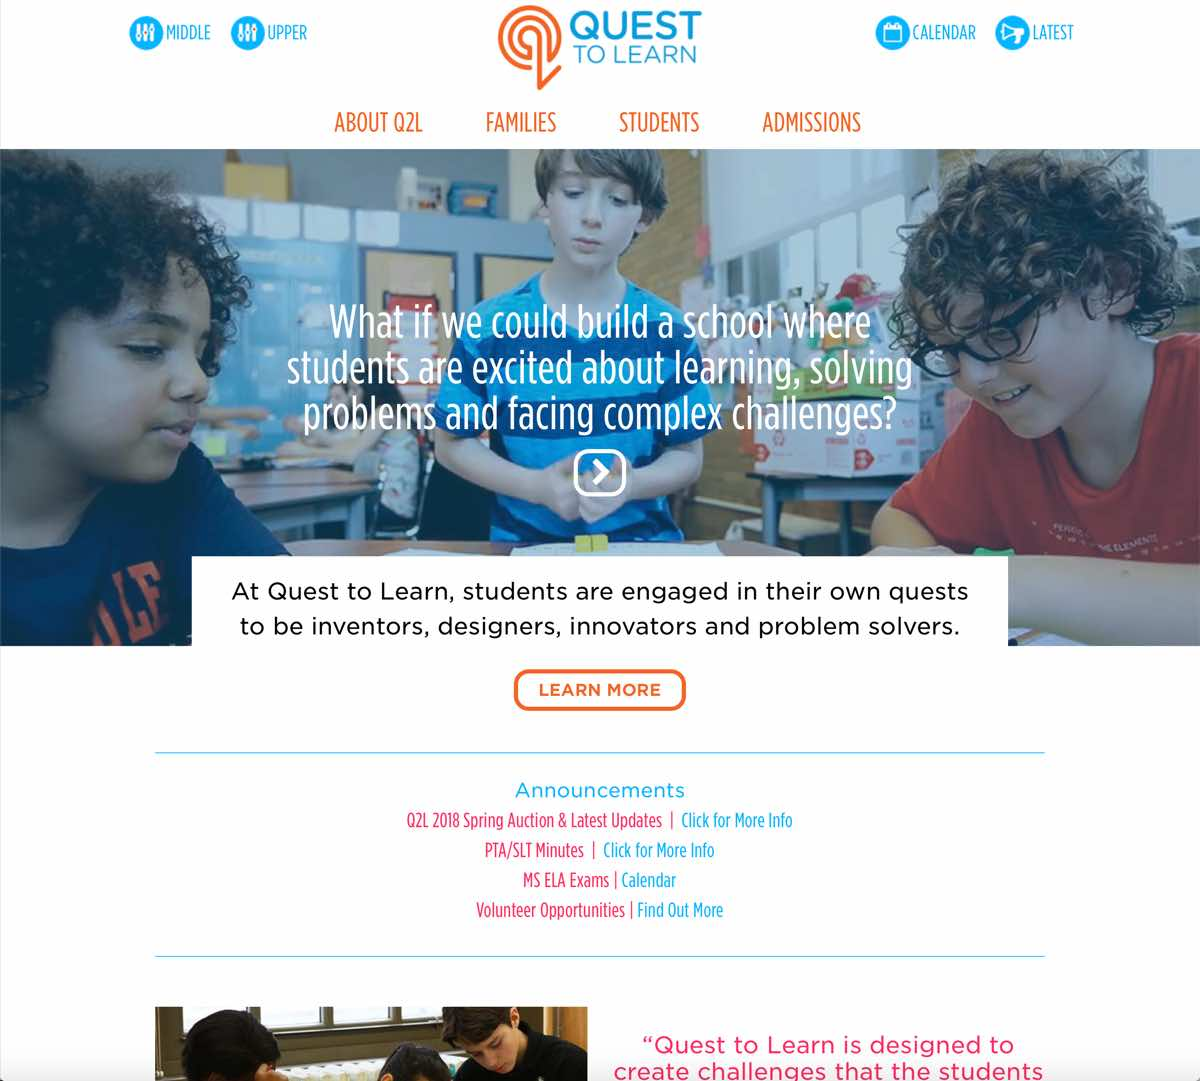 Quest to learn: exemple de gamification pour l'enseignement